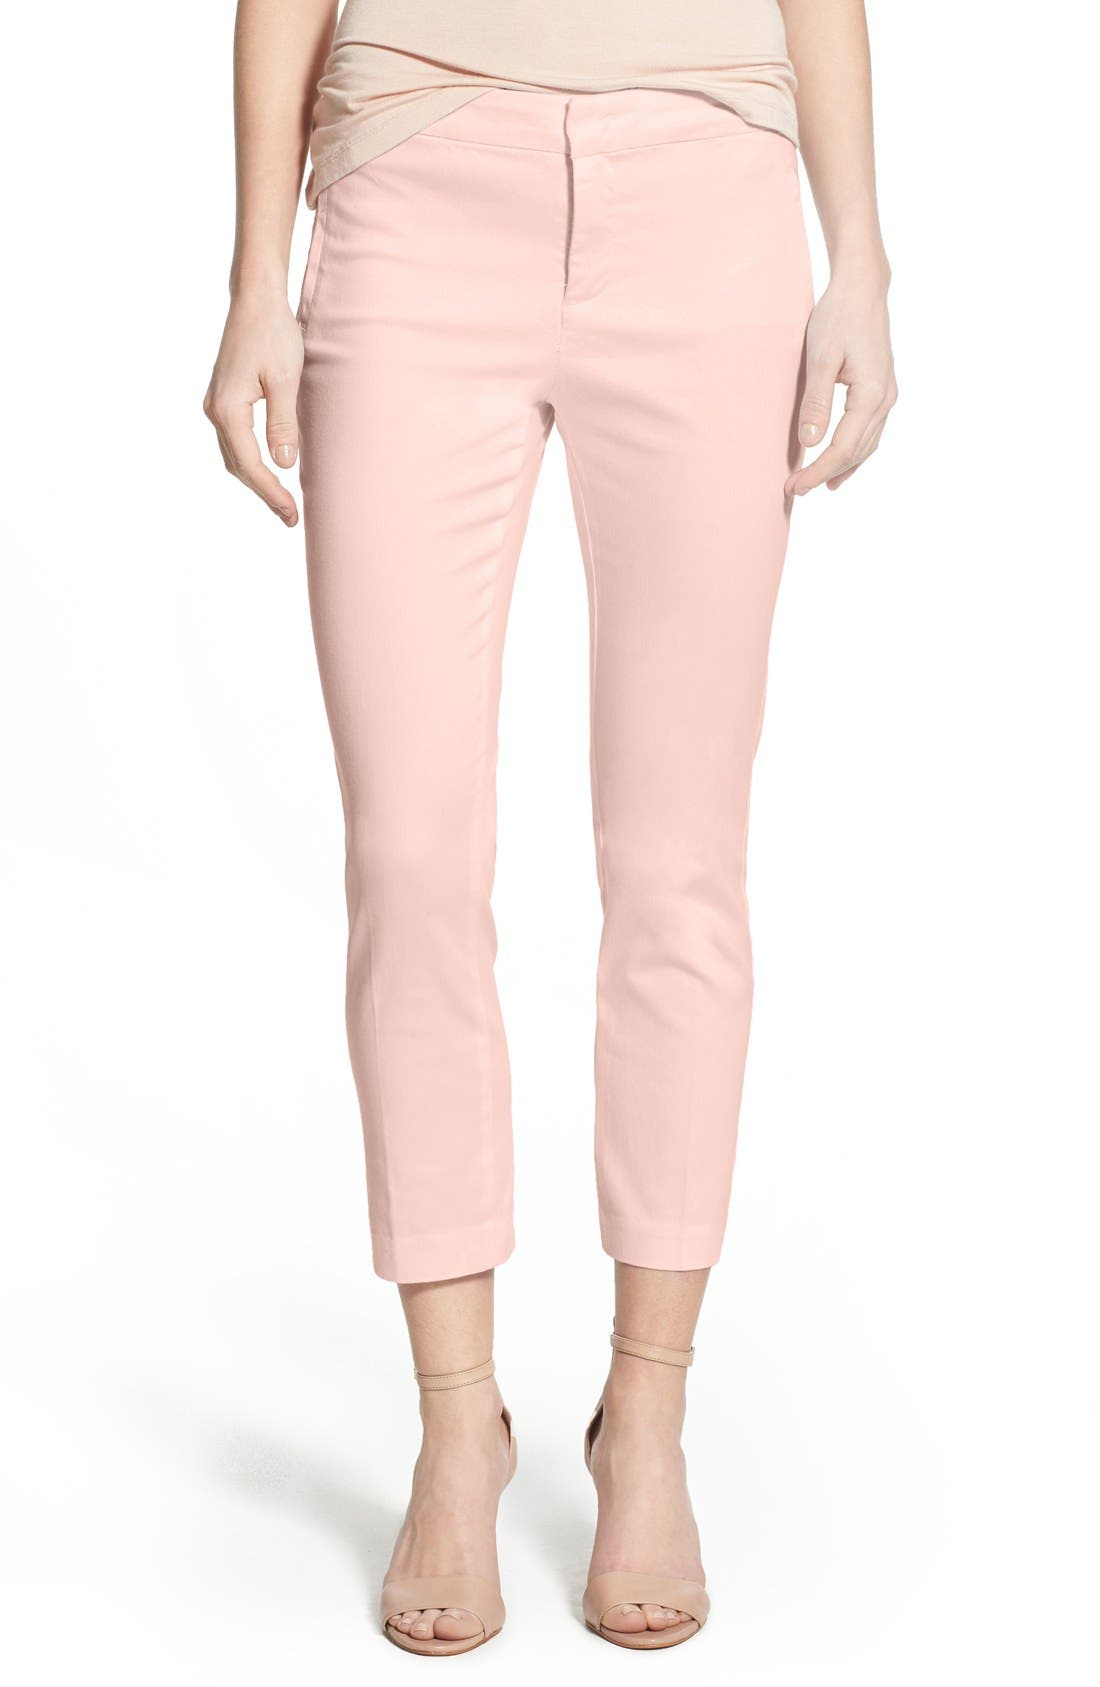 Main Image - NYDJ 'Corynna' Print Stretch Sateen Slim Ankle Pants (Regular & Petite)